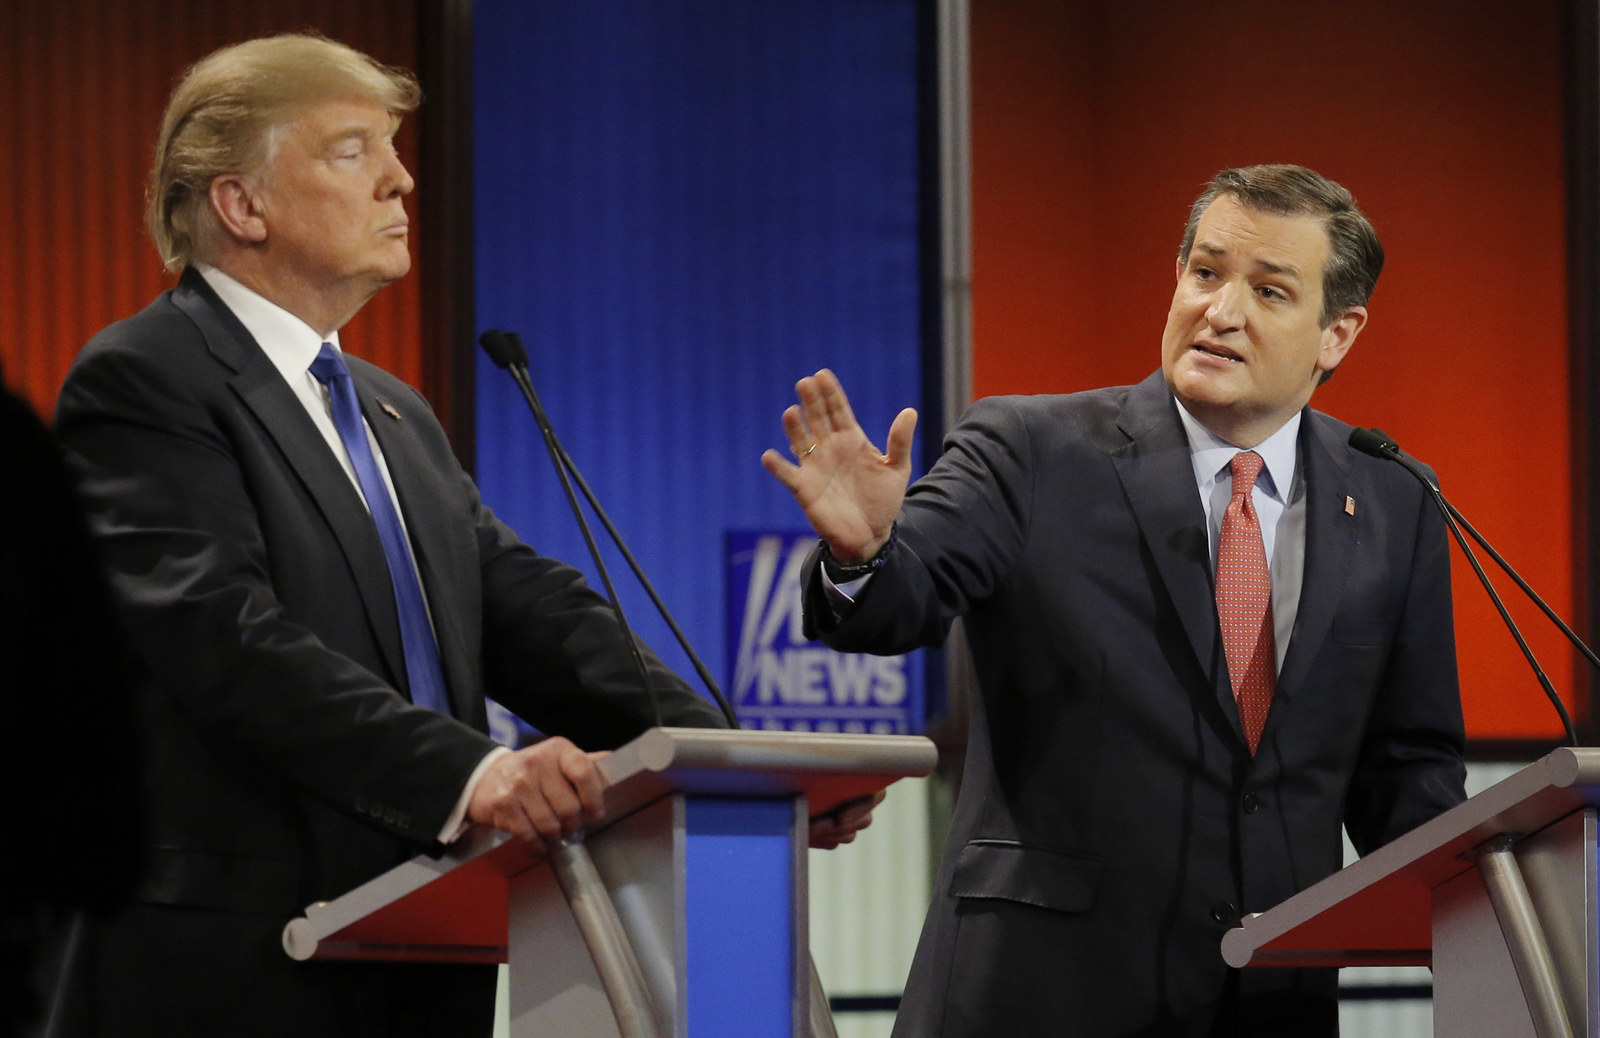 Cruz and rival candidate Donald Trump at the Republican presidential candidates debate in Detroit.